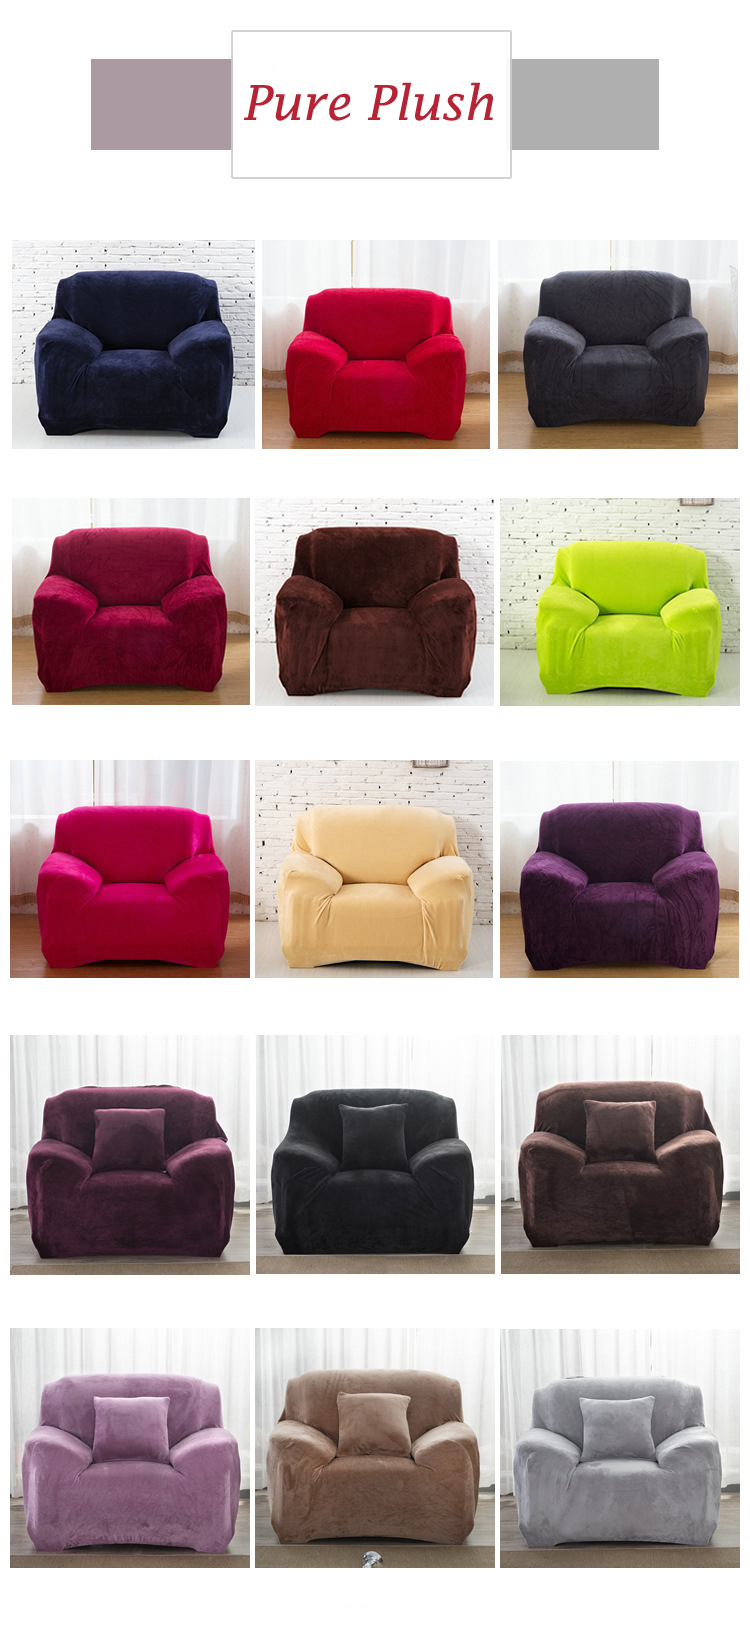 Solid Pure Colour Poly / Plush Stretch Couch Sofa Cover Protector 1 2 3 4 Seater : eBay